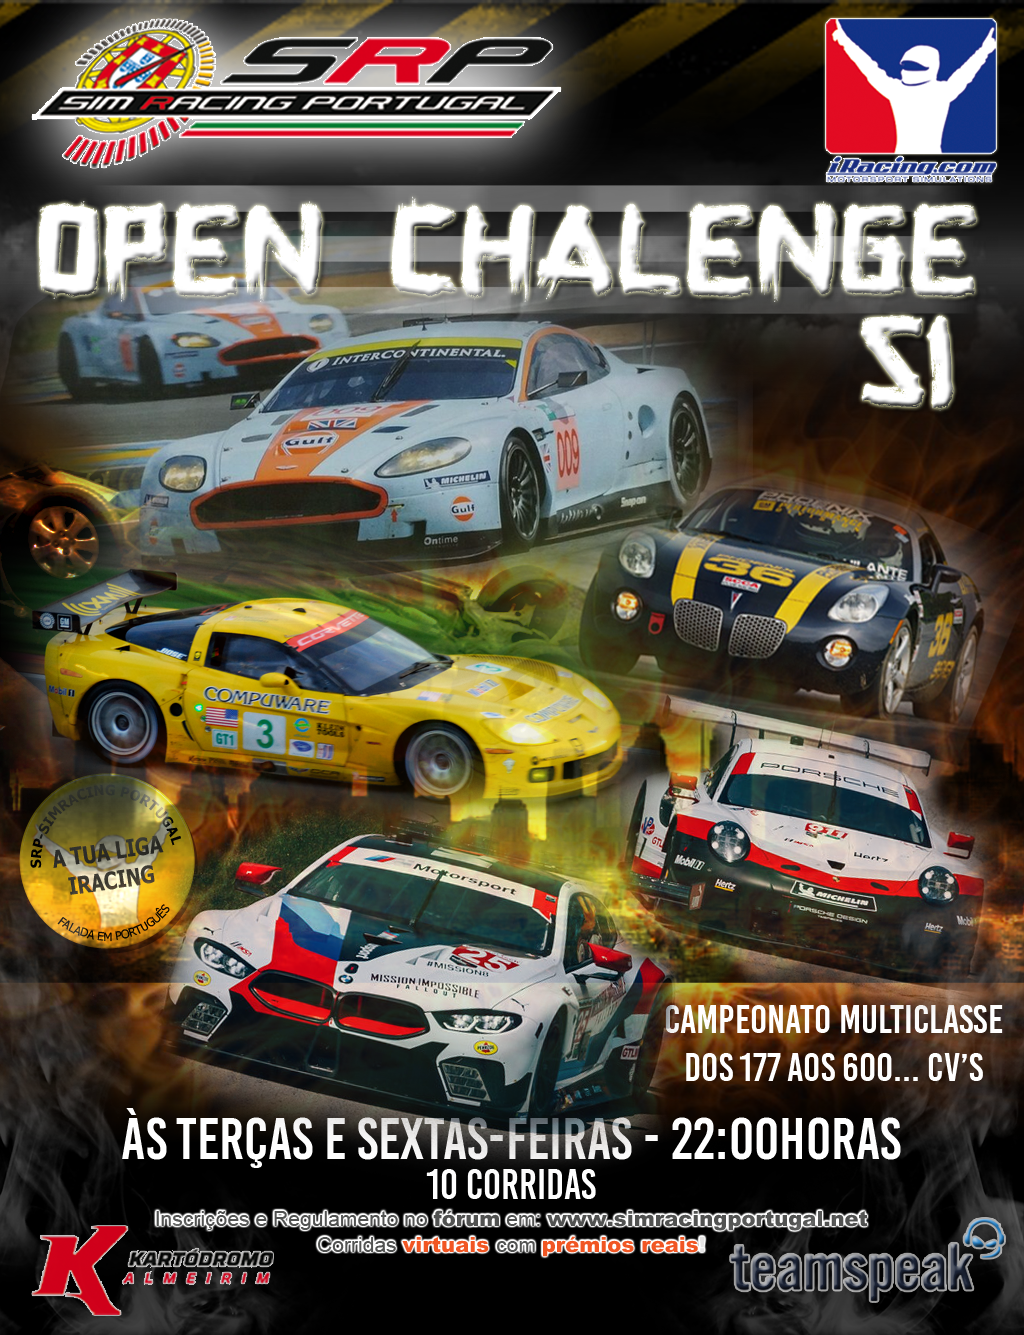 [Image: OpenChallengeS1-flyer.png]